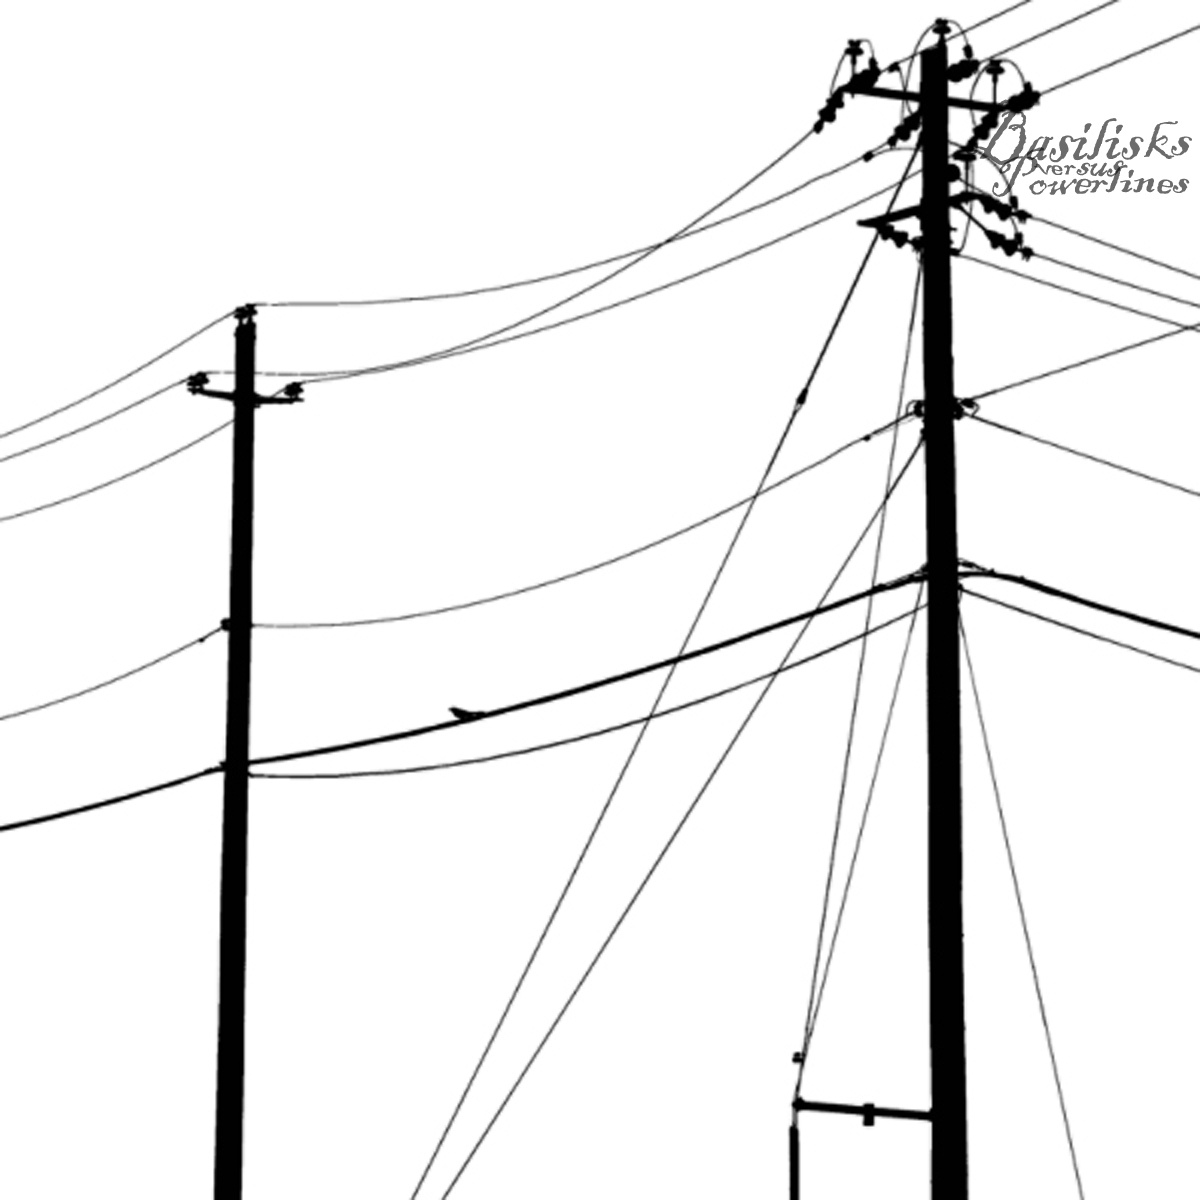 Utility Pole Drawing At Free For Personal Use Telephone Wires Diagram 1200x1200 Electricity Schematic Block United States Continents